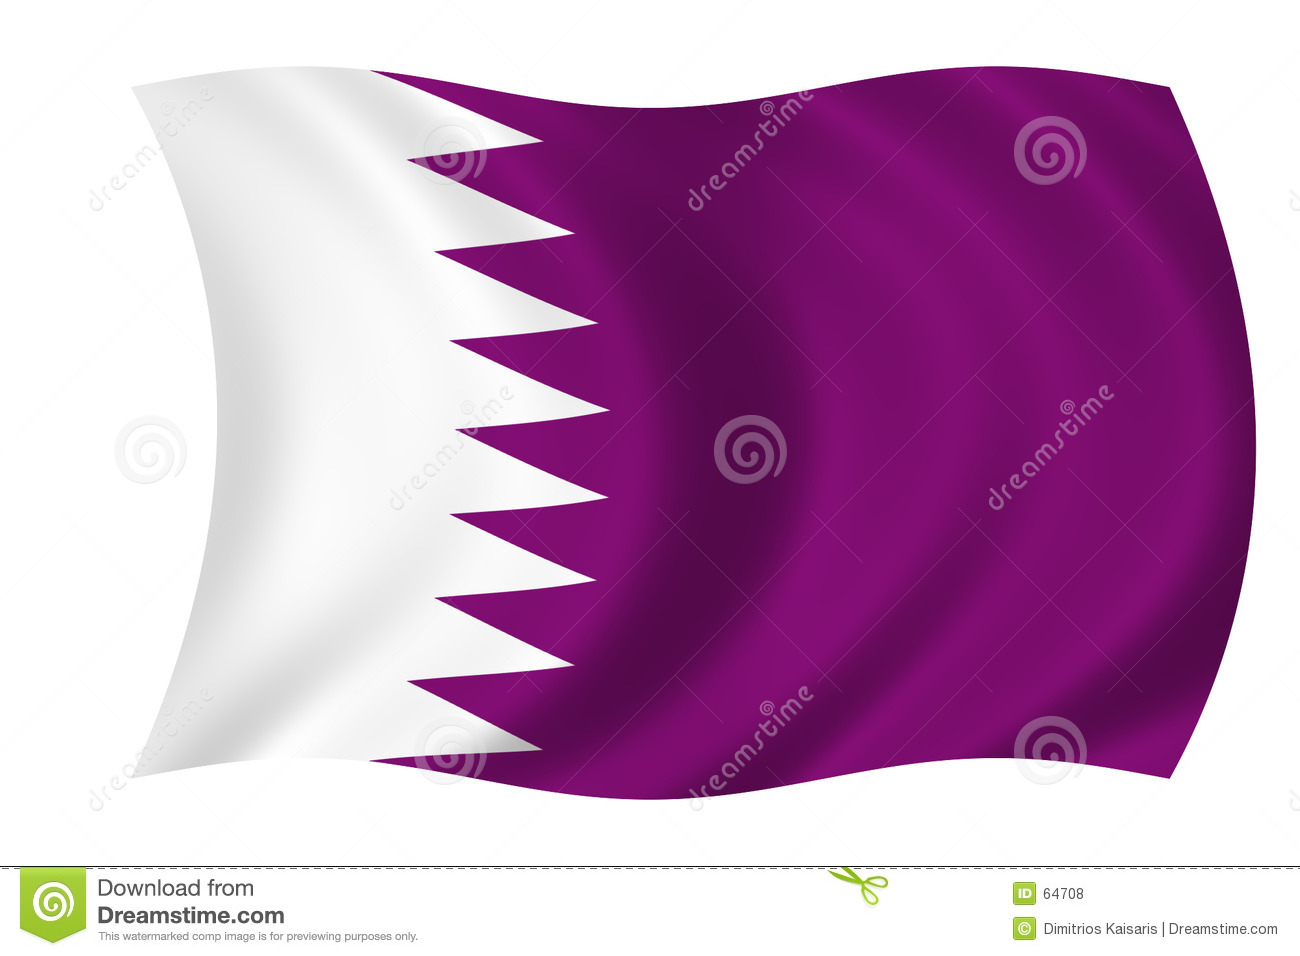 Download Indicateur du Qatar illustration stock. Illustration du qatar - 64708